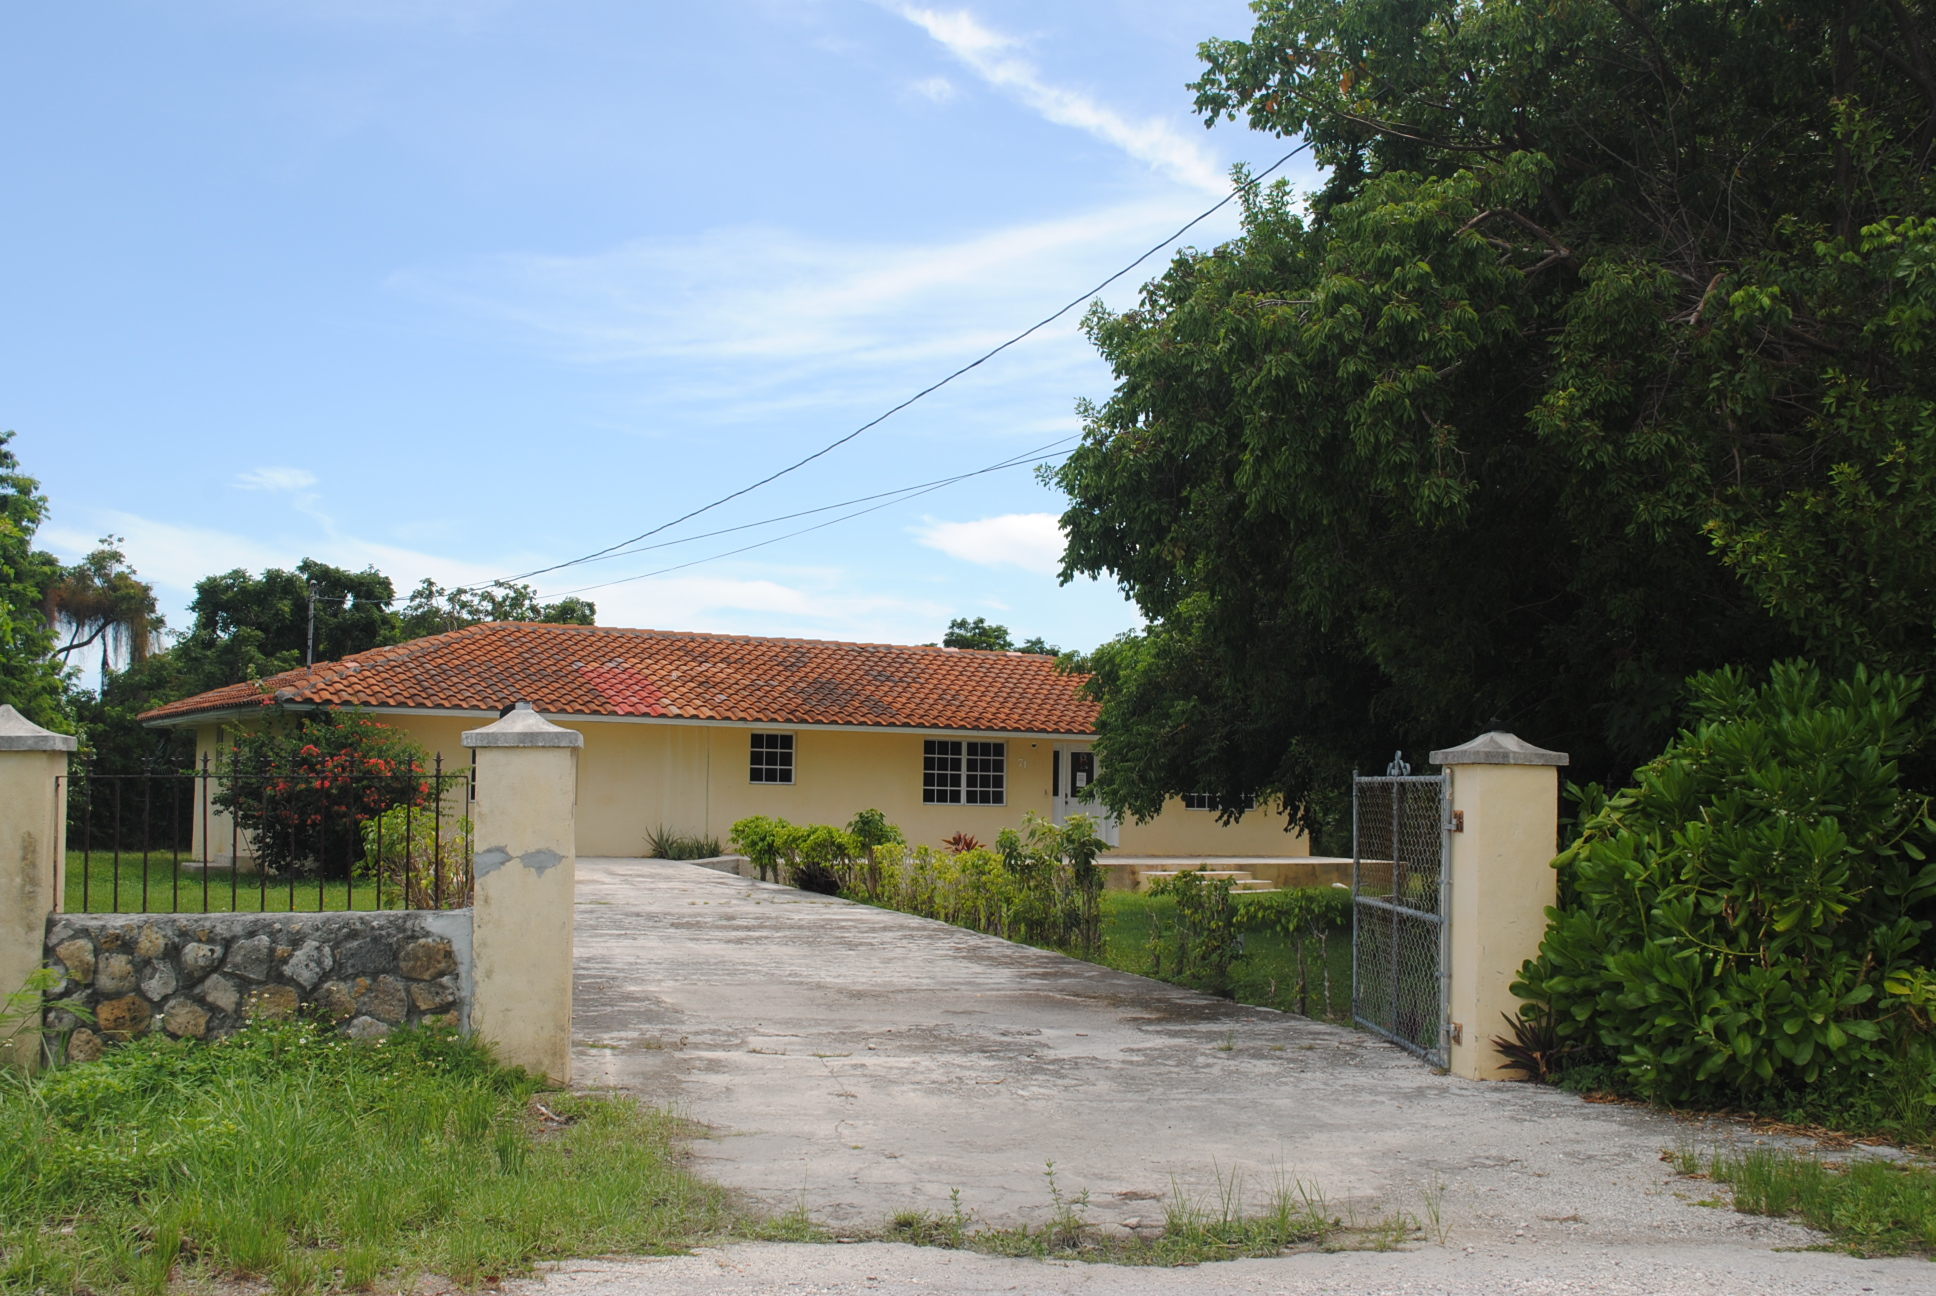 Single Family Home for Sale at Bahama Terrace House Bahama Terrace, Freeport And Grand Bahama, Bahamas